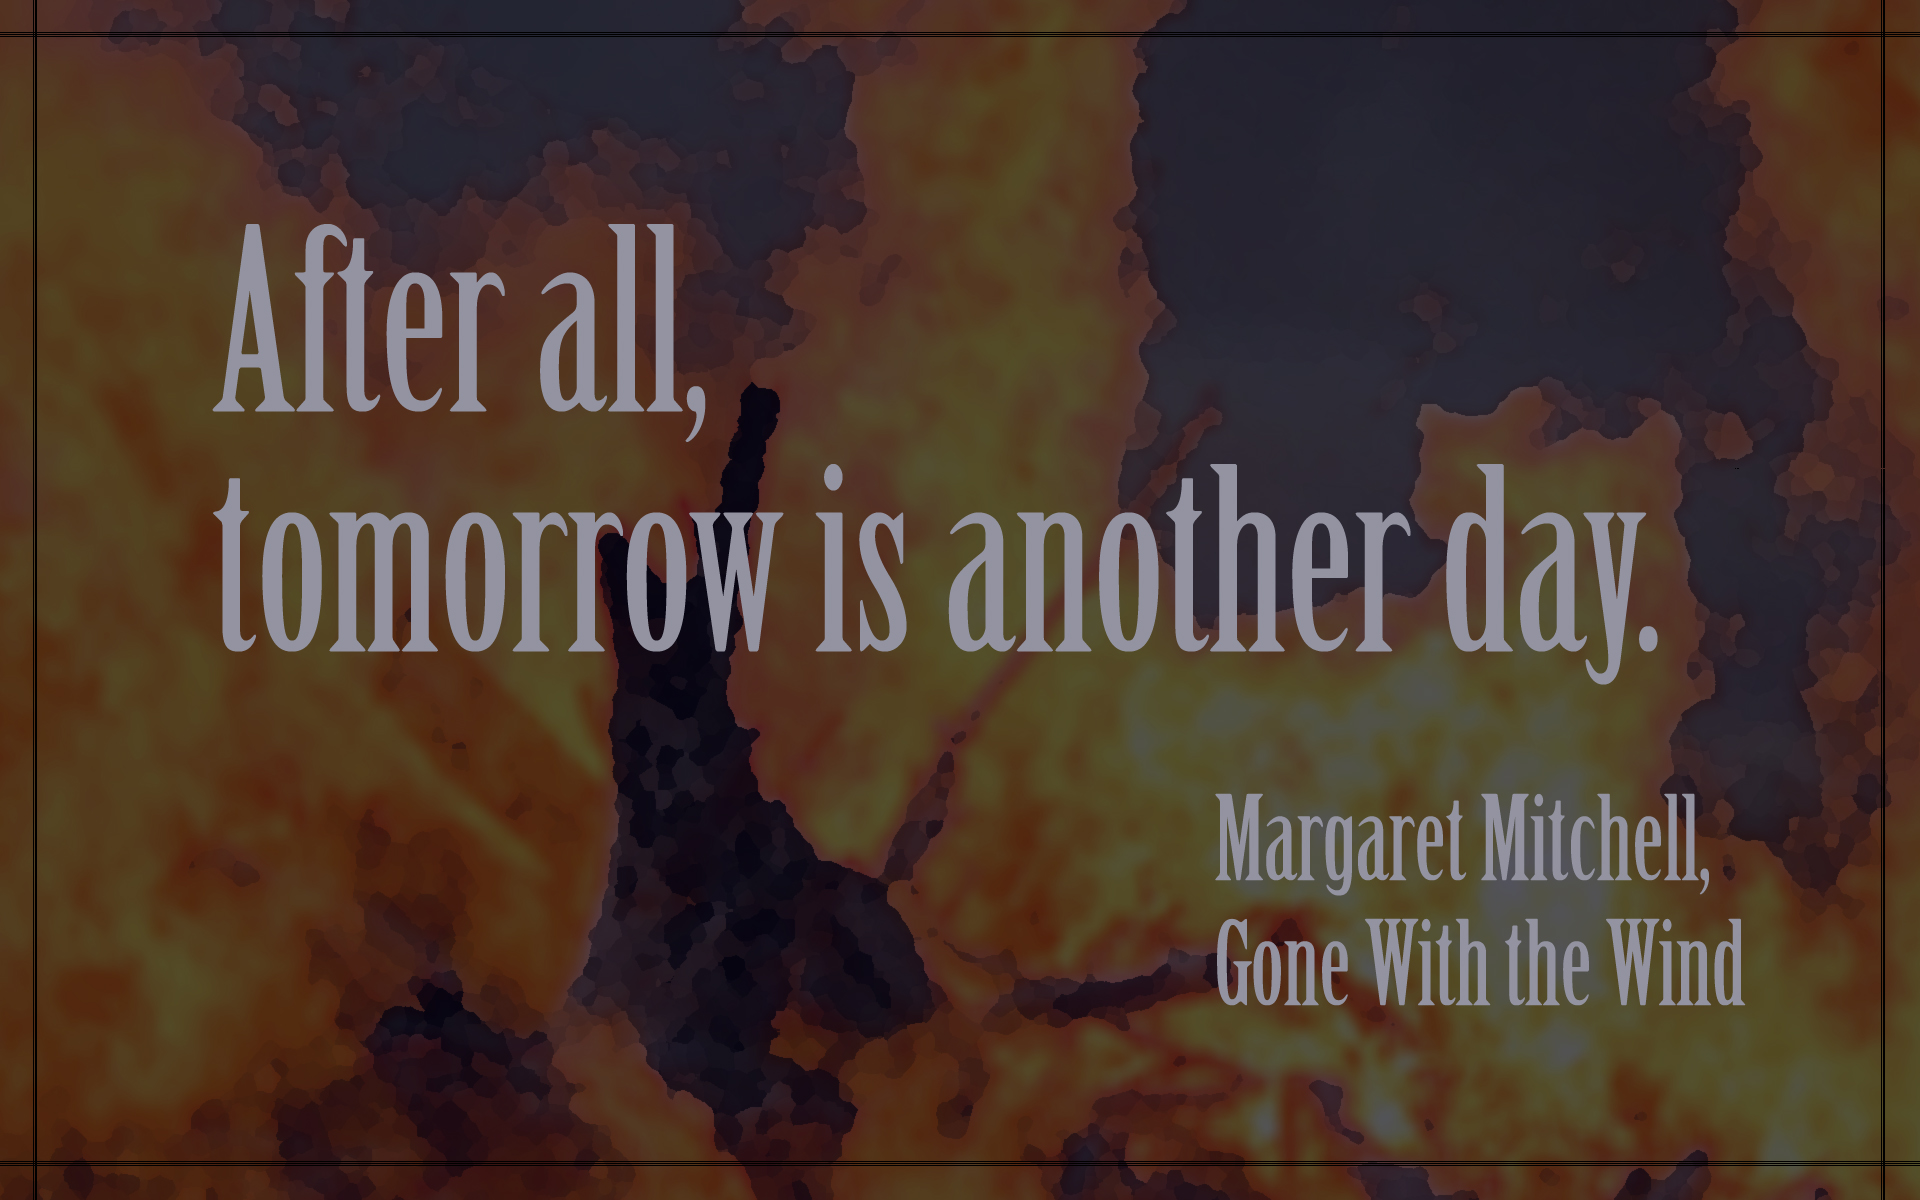 Tomorrow Funny Quotes Quotesgram: Tomorrow Is Another Day Quotes. QuotesGram